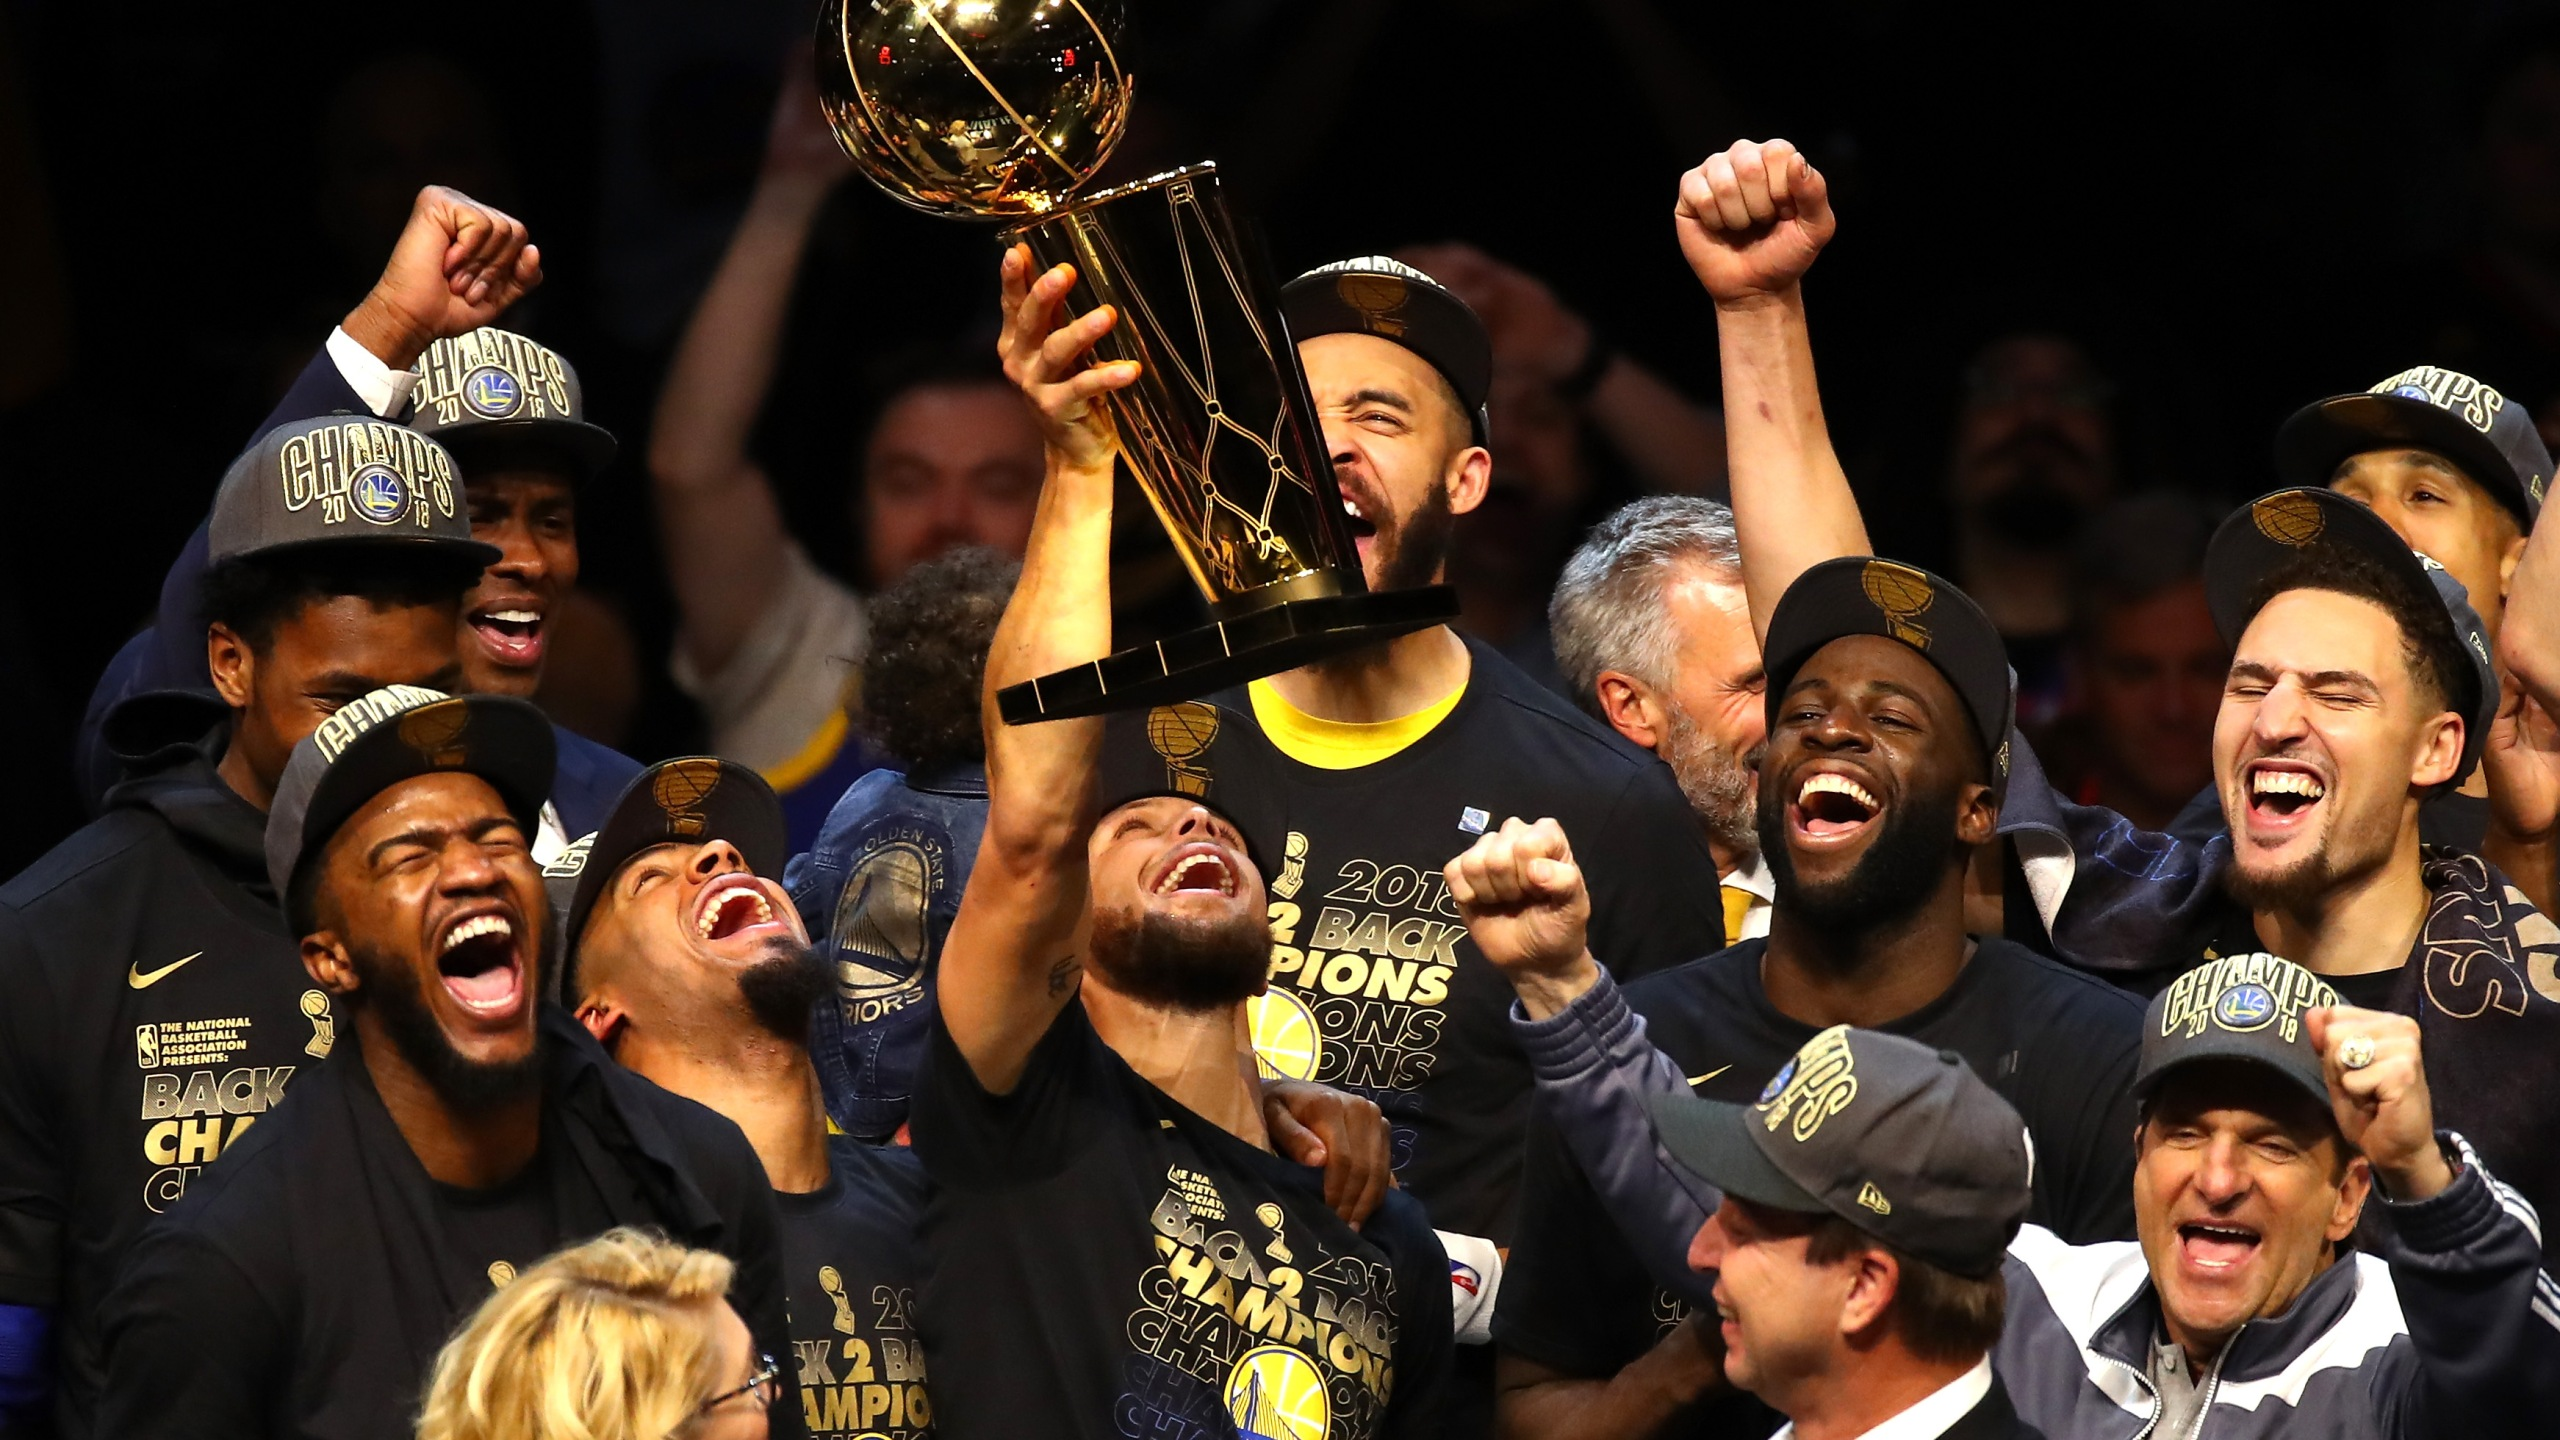 Steph Curry the Golden State Warriors celebrates with the Larry O'Brien Trophy after defeating the Cleveland Cavaliers during game four of the 2018 NBA Finals at Quicken Loans Arena on June 8, 2018 in Cleveland, Ohio. (Credit: Justin K. Aller/Getty Images)